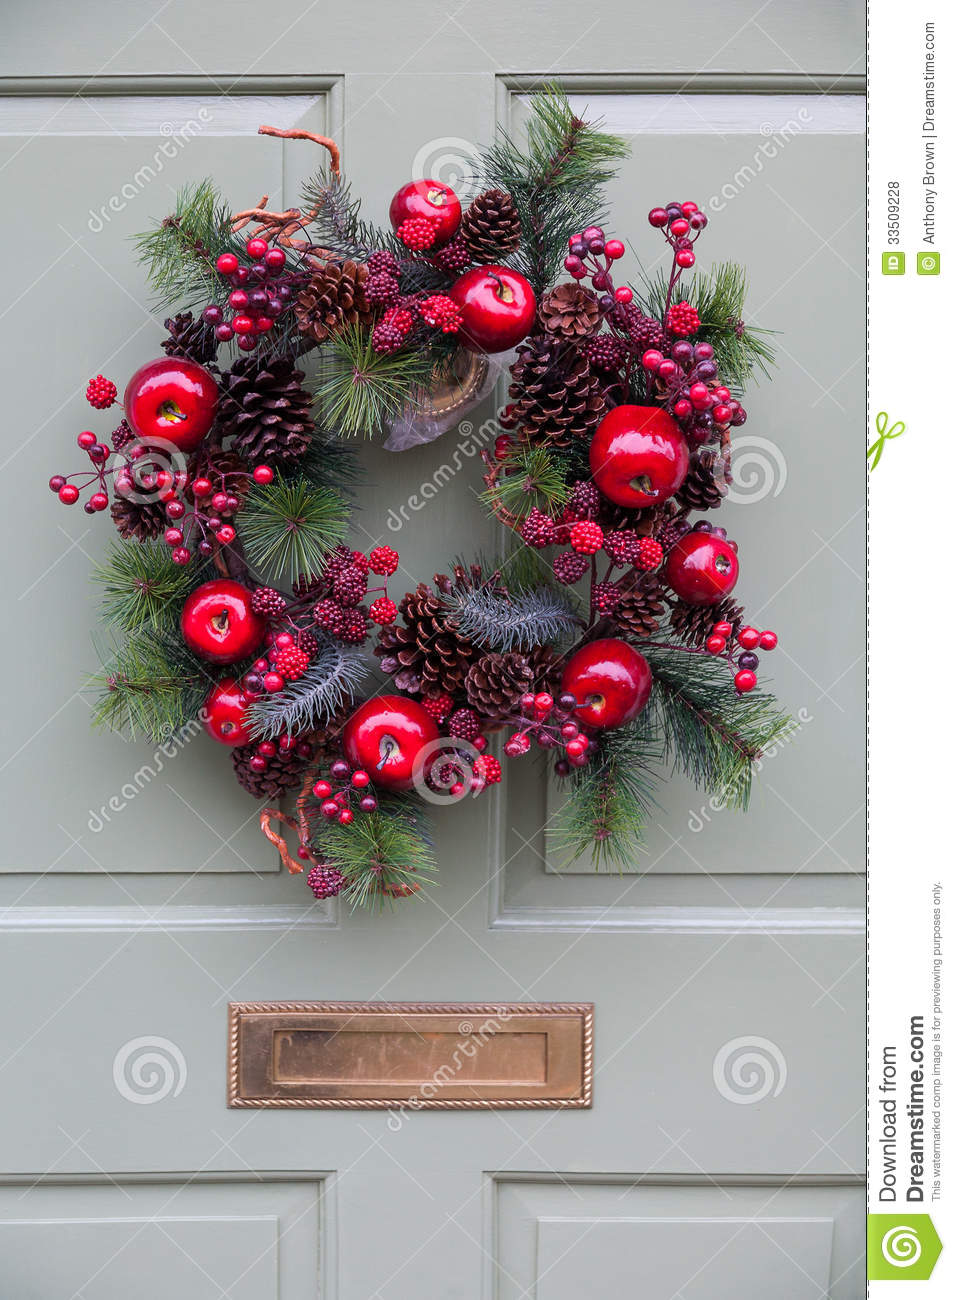 Christmas Wreath On A Pale Green Door Stock Photo Image Of Cones